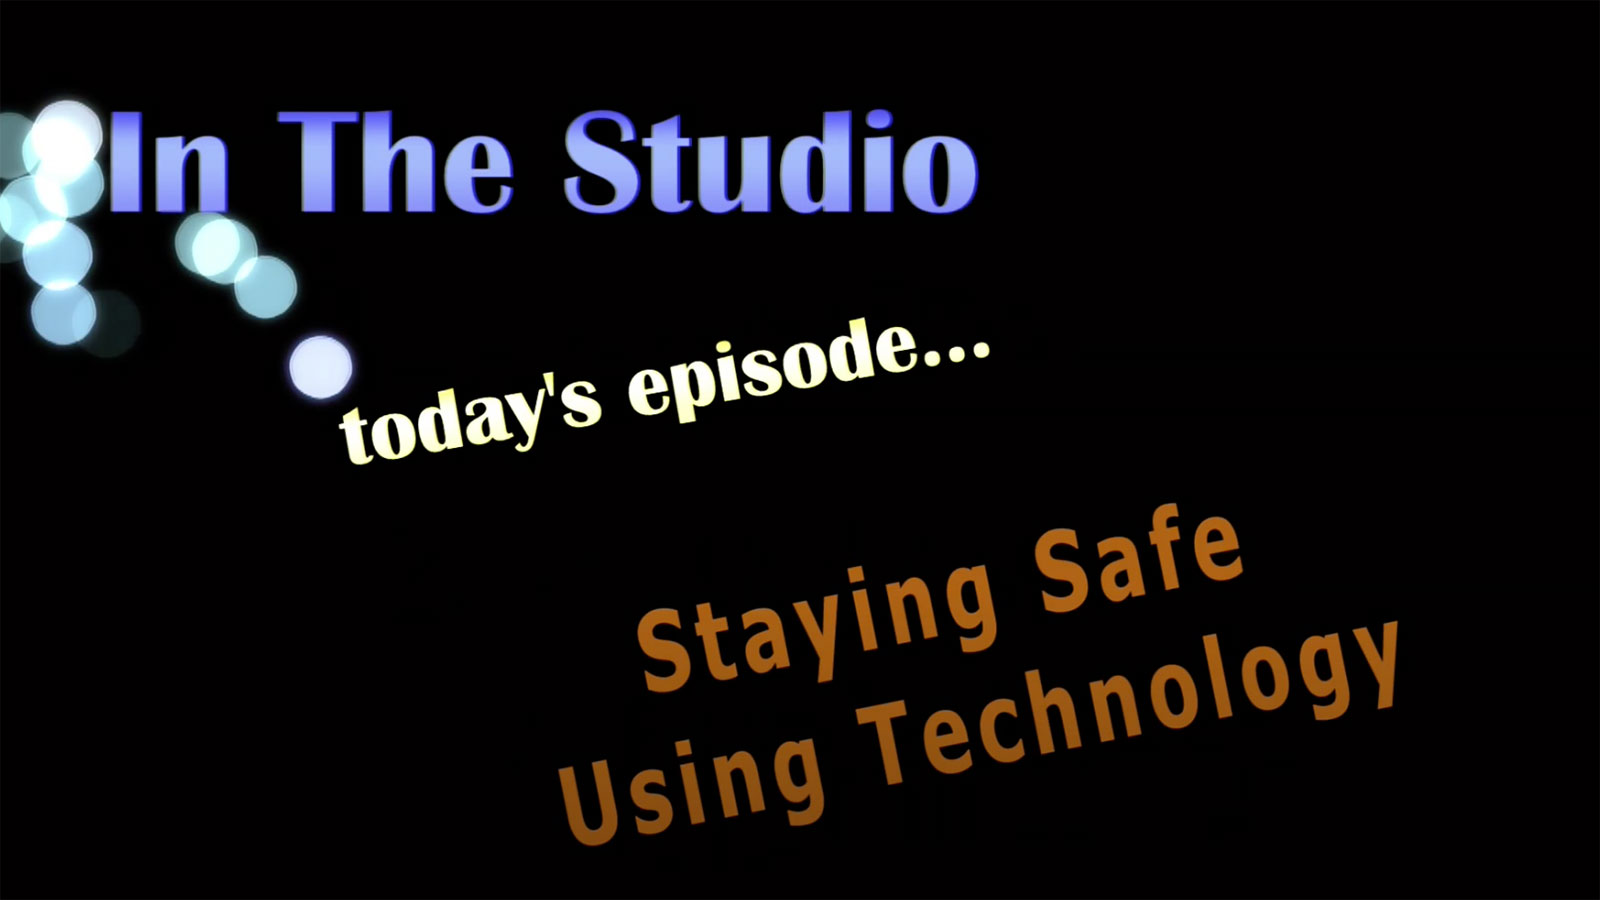 In the Studio: Staying Safe Using Technology